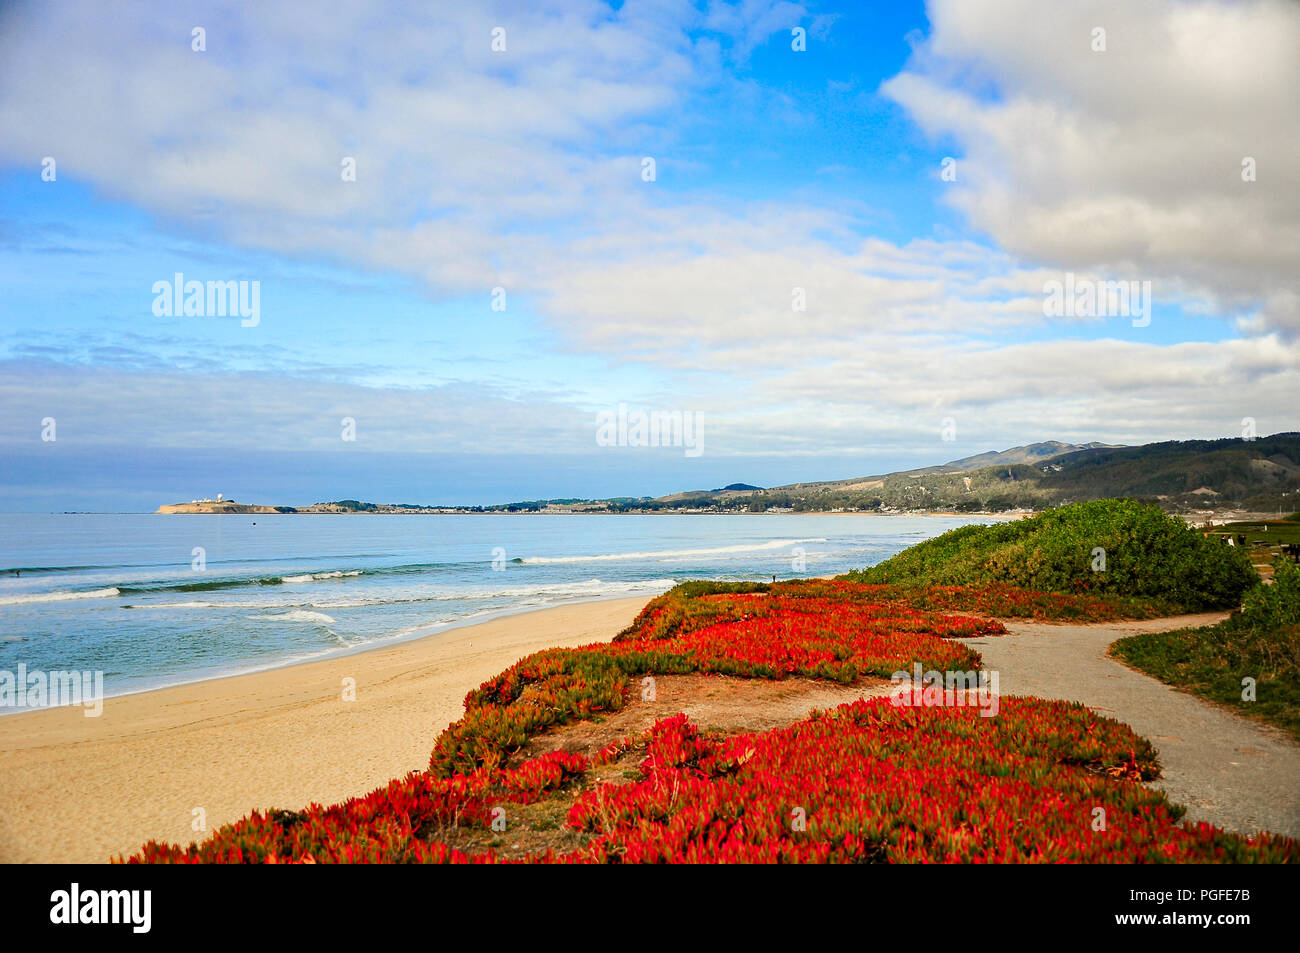 Beautful Pacific ocean seascape at Pebble beach near Monterey, California. Foggy background with crashing waves, sandy shore, rocks and blue cloud sky Stock Photo